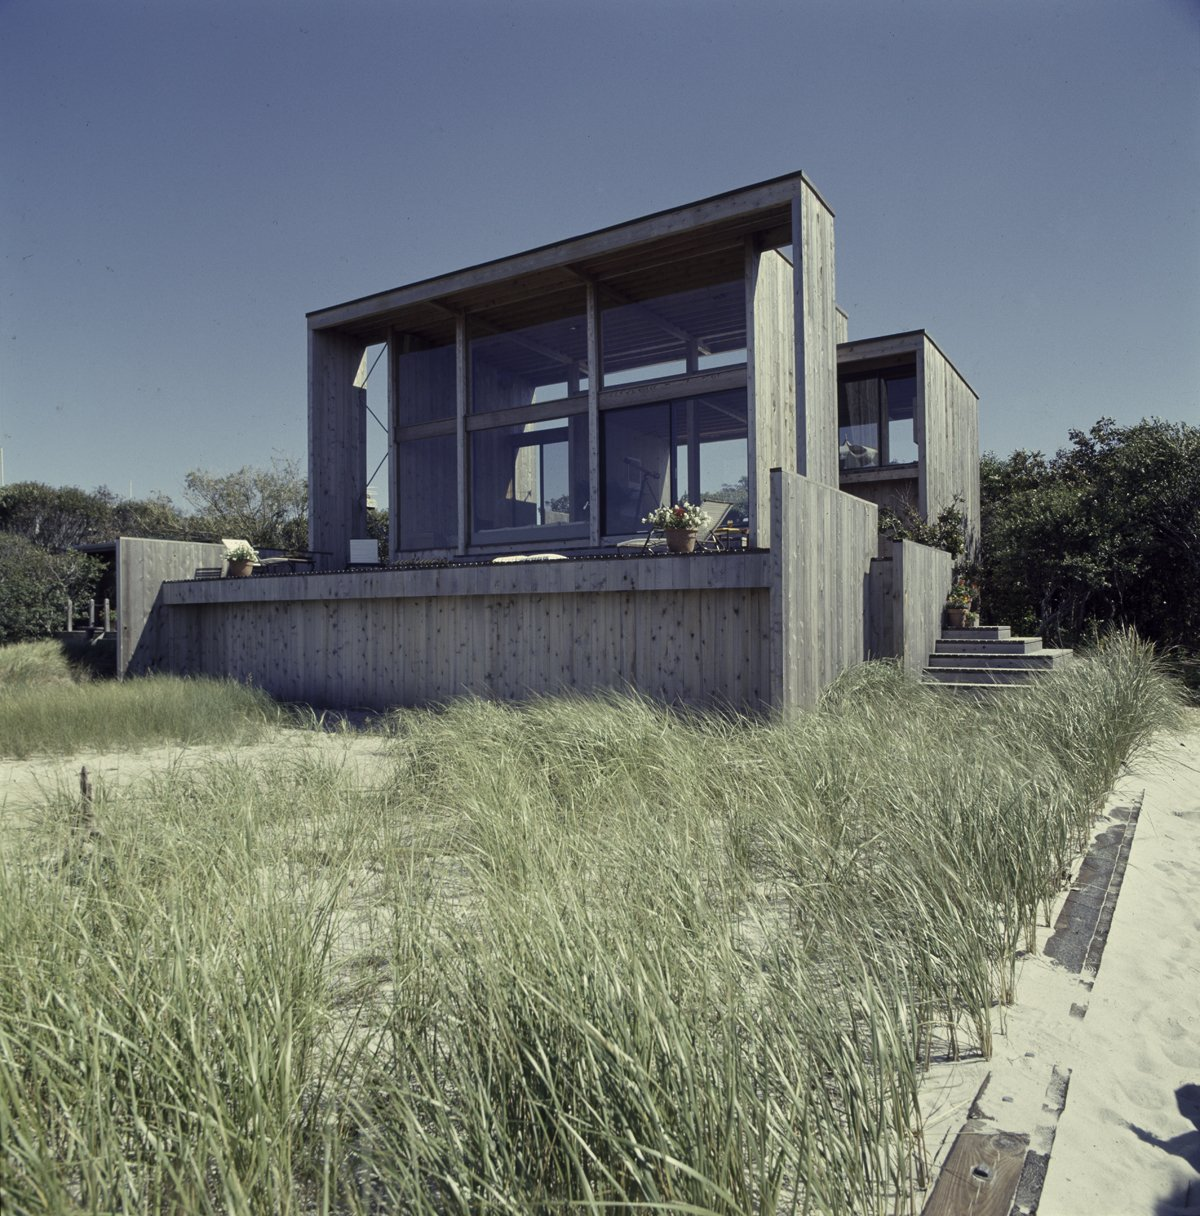 "252 Bay Walk by Horace Gifford (1972-75). This house owes certain elements, like its ""disembodied facade reminiscent of the oversized shading devices"" to Paul Rudolph's work. Cabins & Hideouts by Stephen Blake"